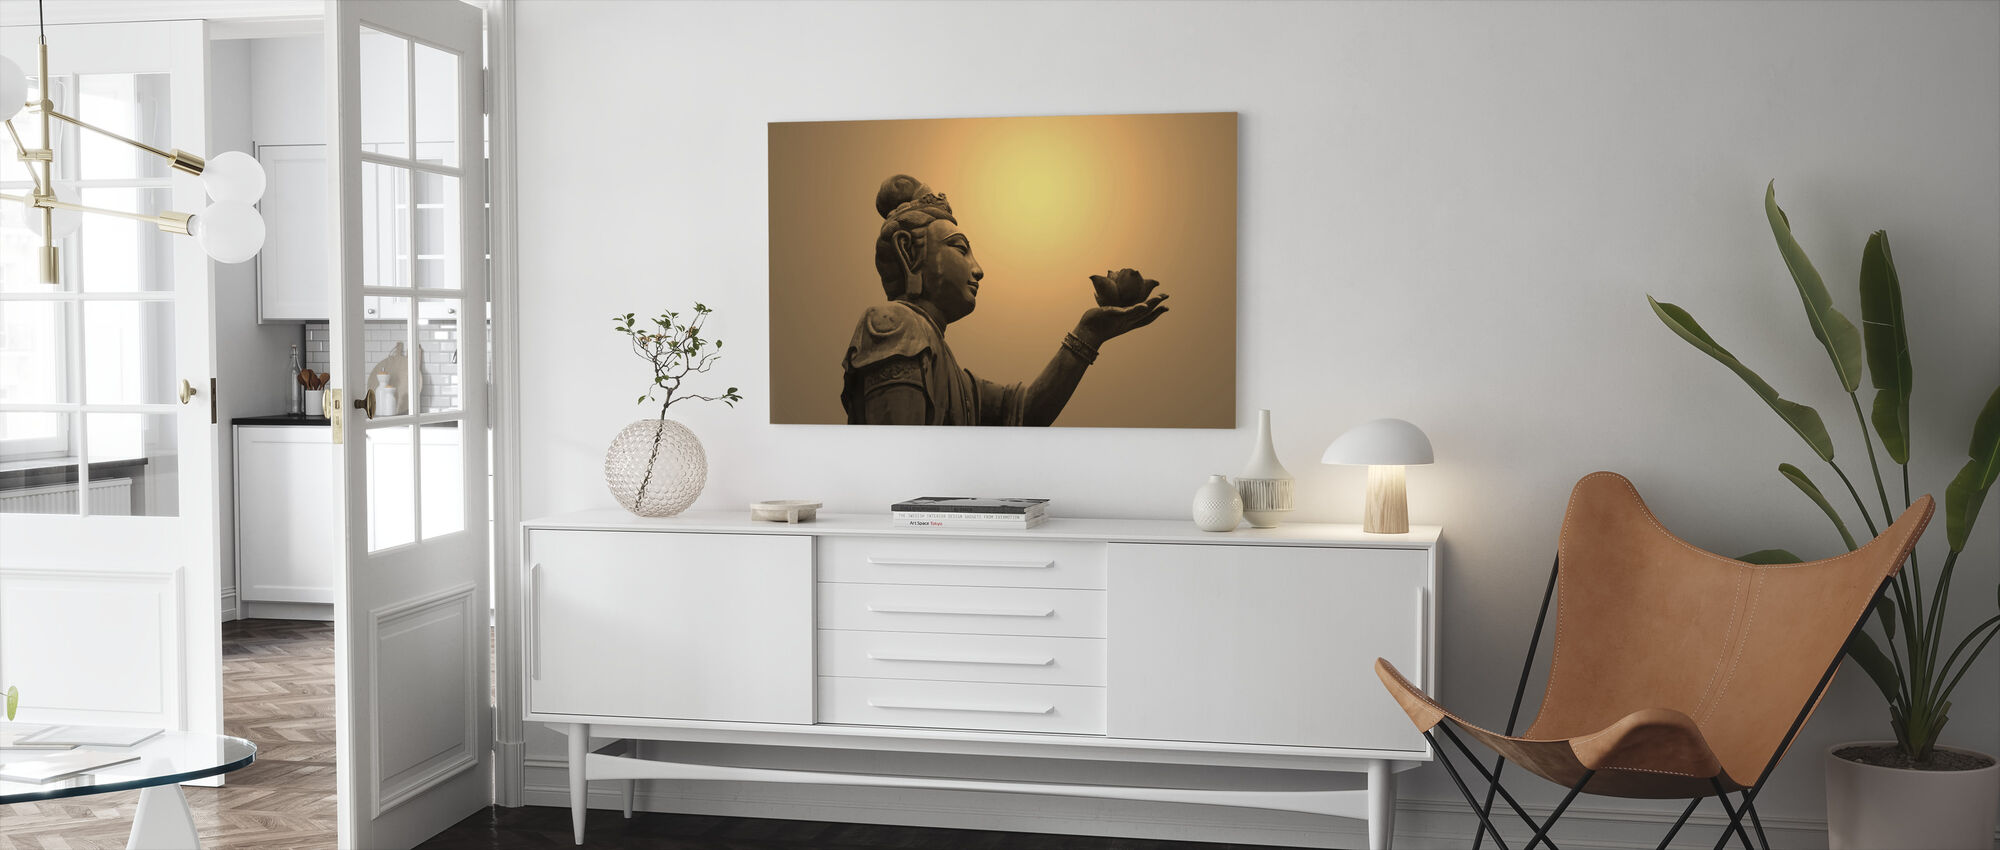 Buddhist Statue, Hong Kong - Canvas print - Living Room